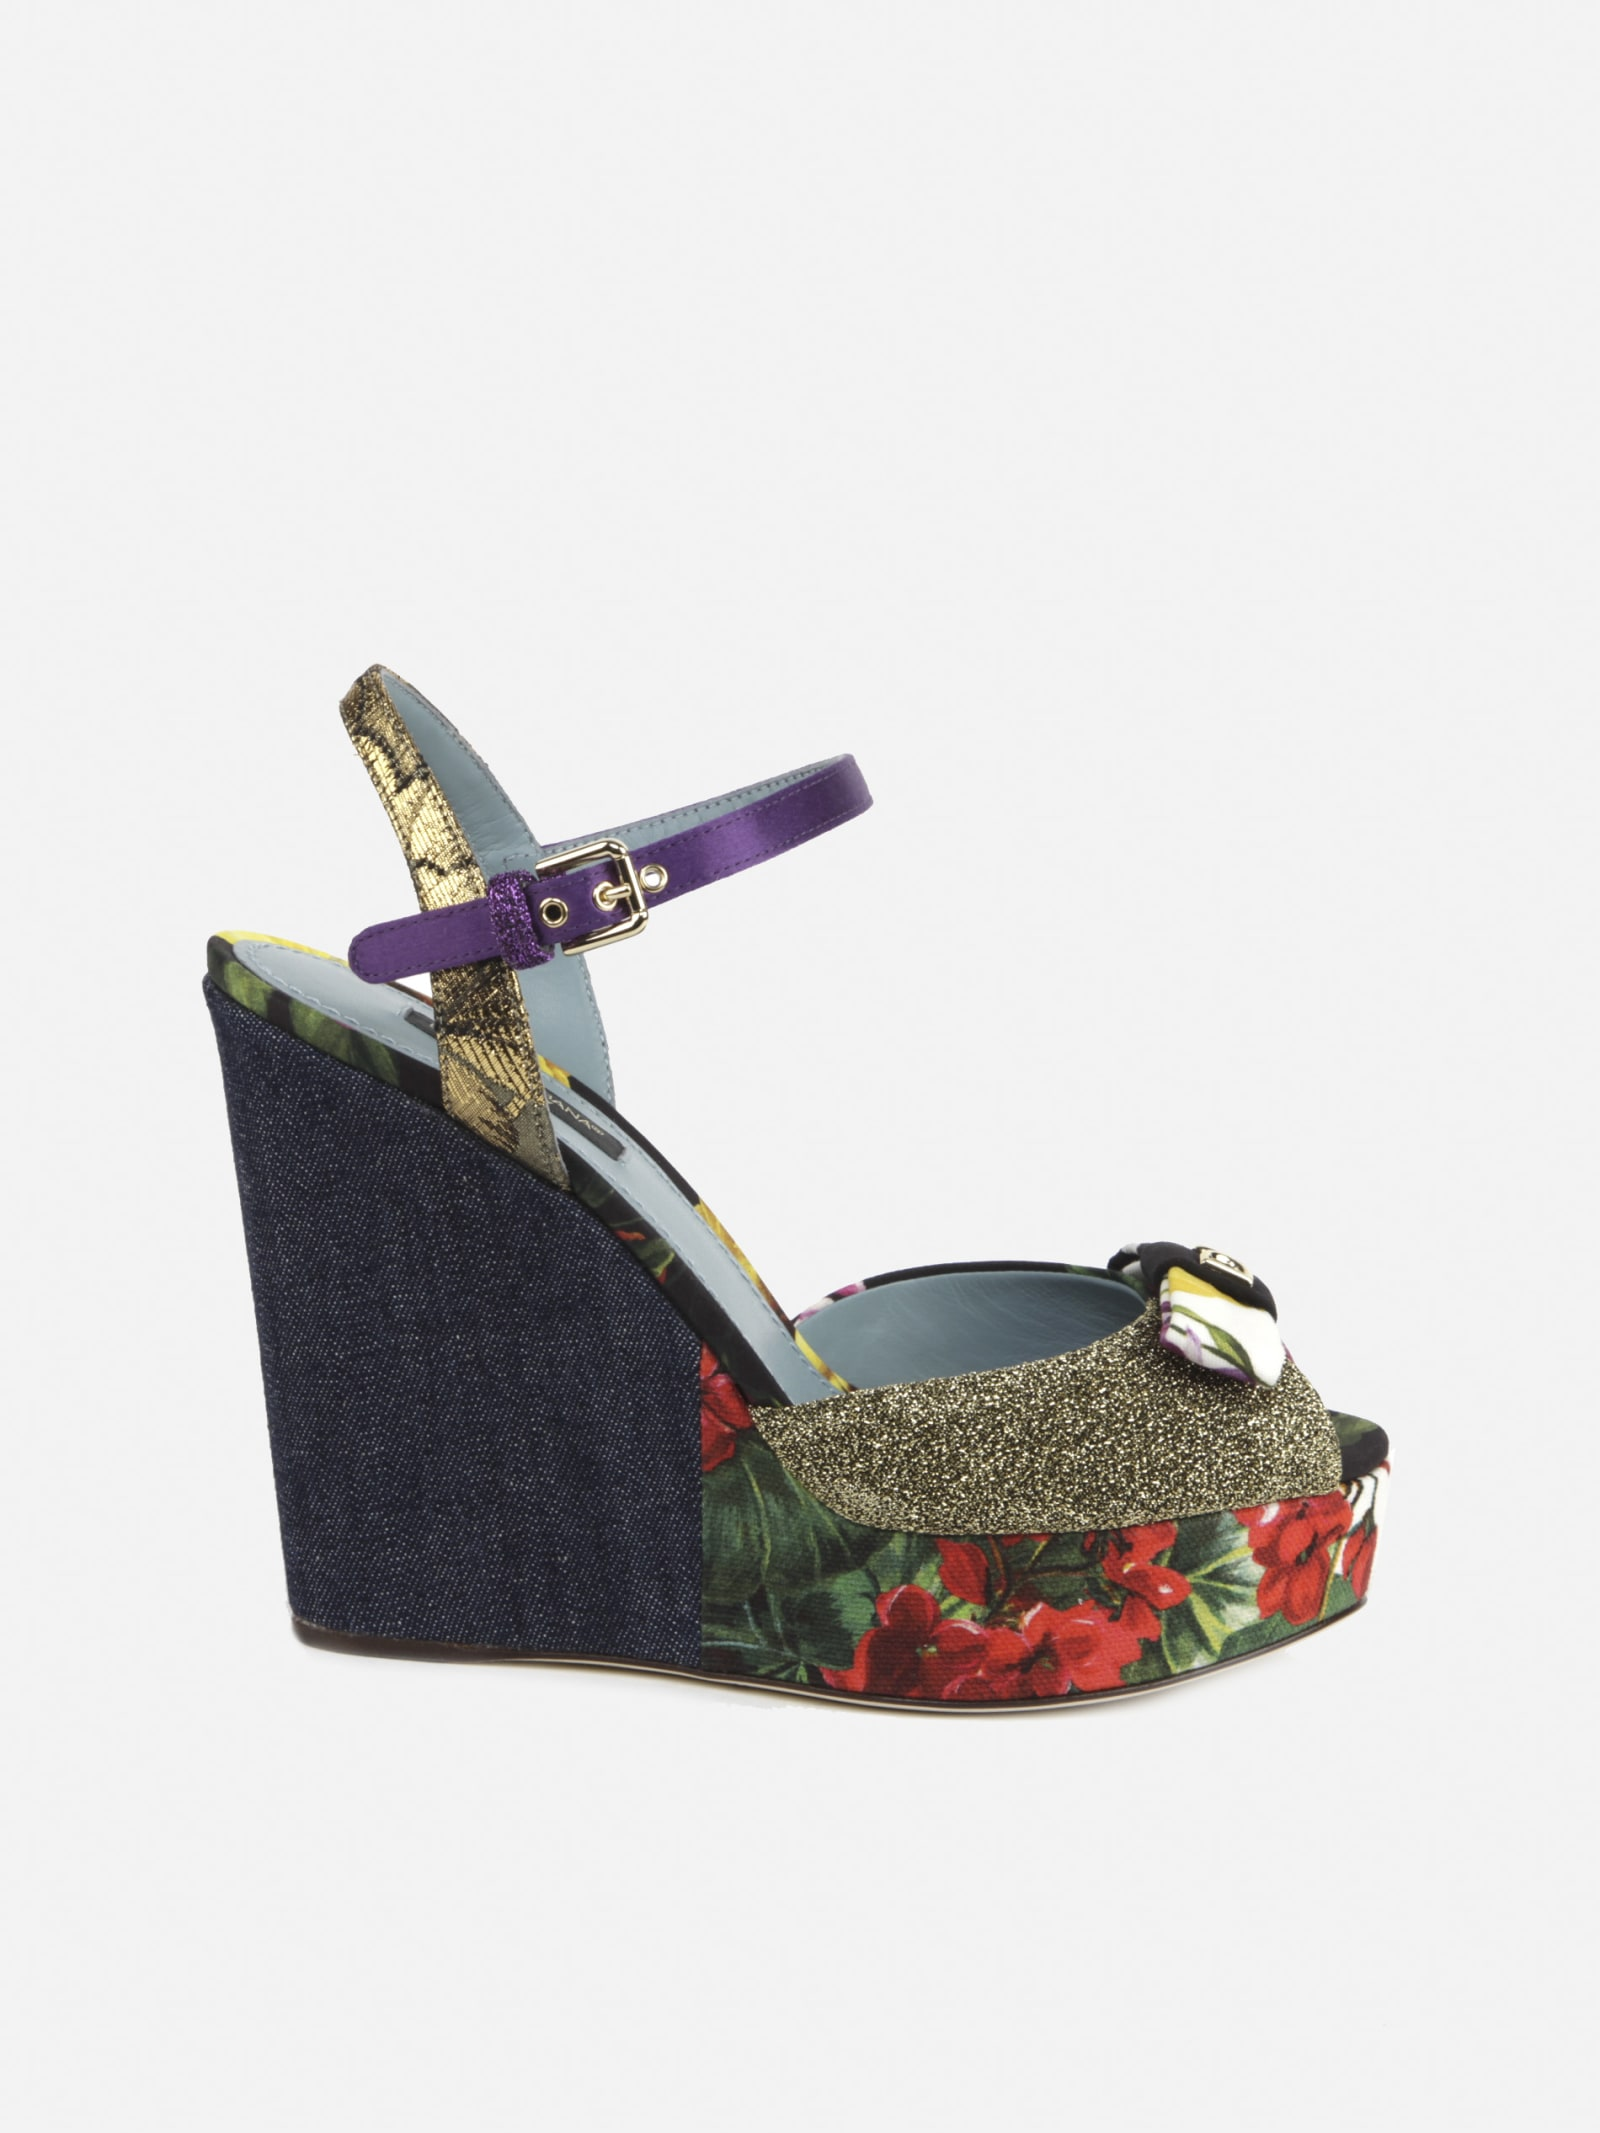 Dolce & Gabbana Sandals WEDGES MADE OF PATCHWORK FABRICS WITH MONOGRAM BOW